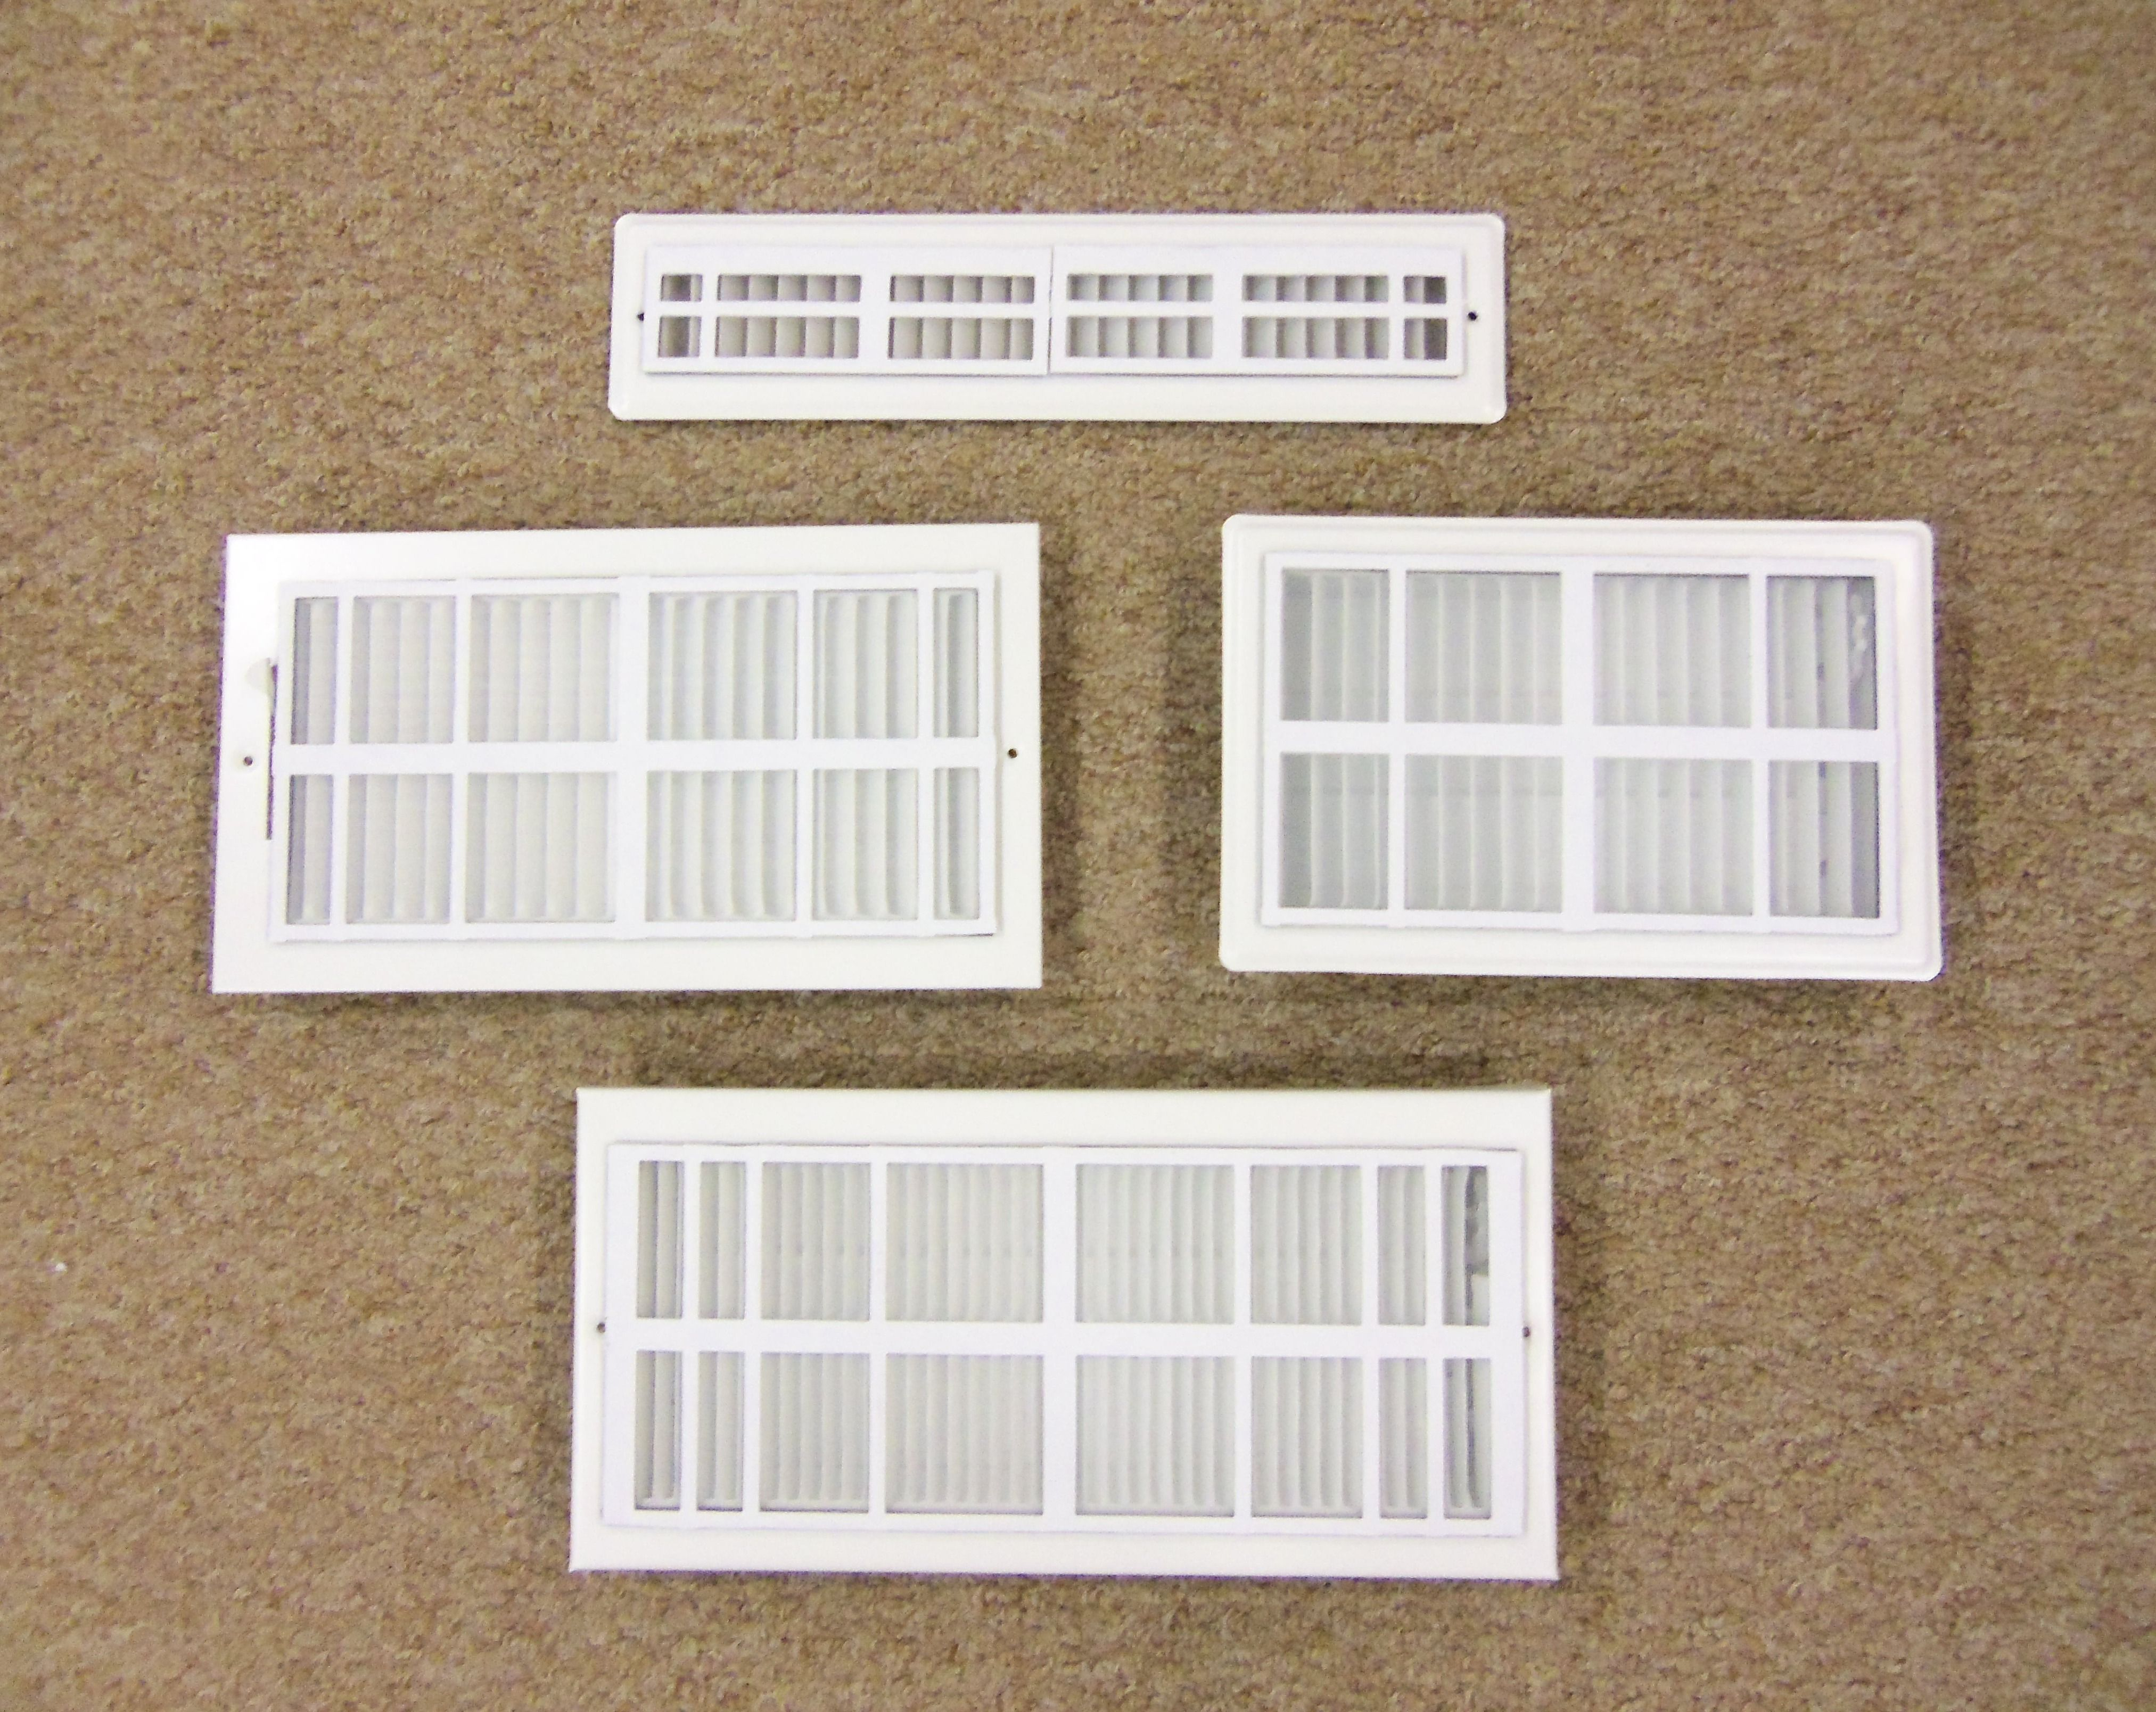 The Vent Filter is a soft PVC grid device with a